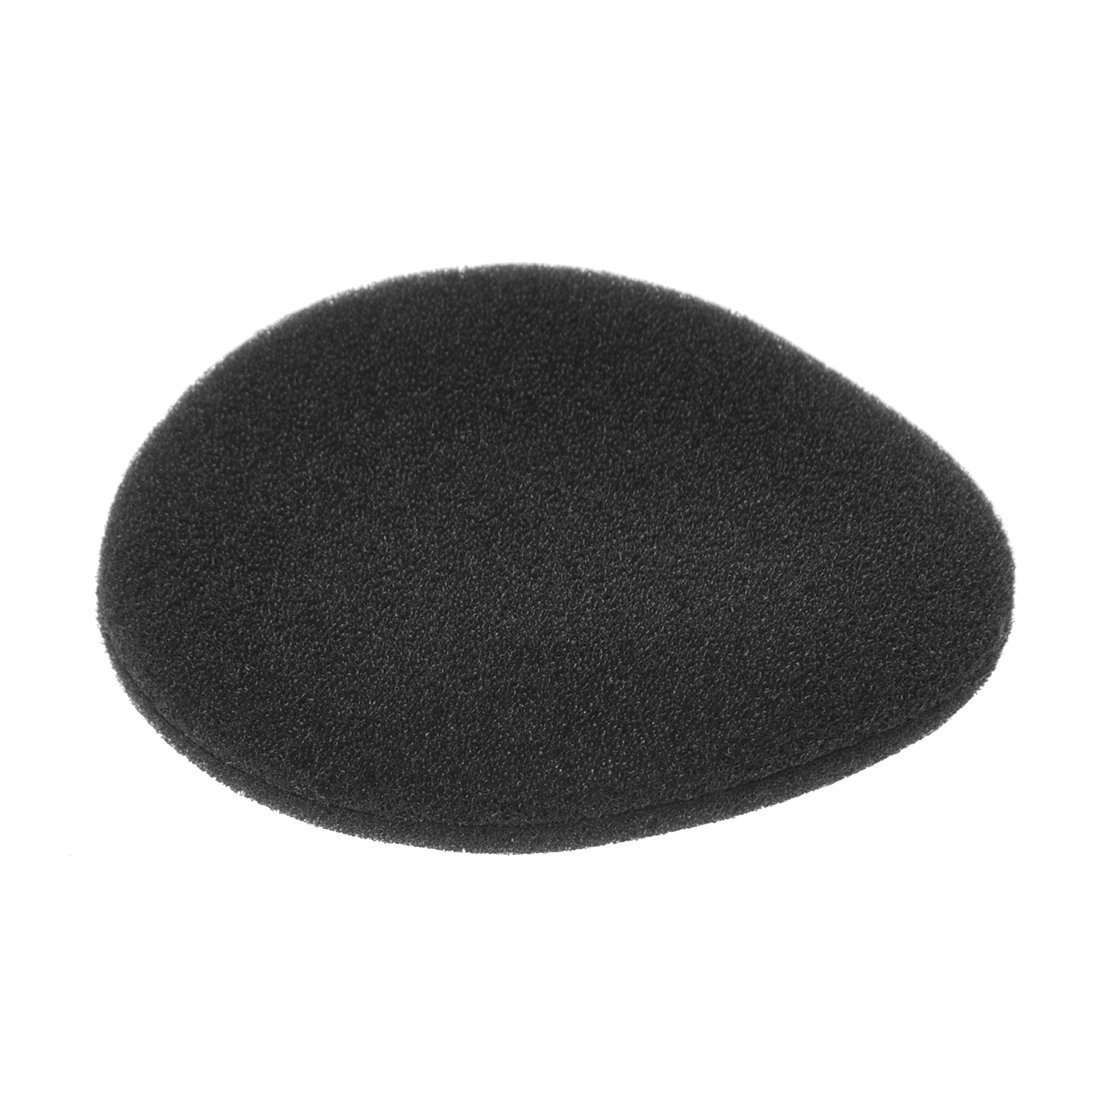 Sony MDR 410 PMX200 Philips PMX 60 II AUDIO Replacement Foam Earpads 6 PACK for Sennheiser PX100 Panasonic SODIAL PXC150 PMX100 PXC250 Skype Also Compatible With Most Other Headphones Sony MDR-101 MM 60 IP R SONY MDR-110LP PX200